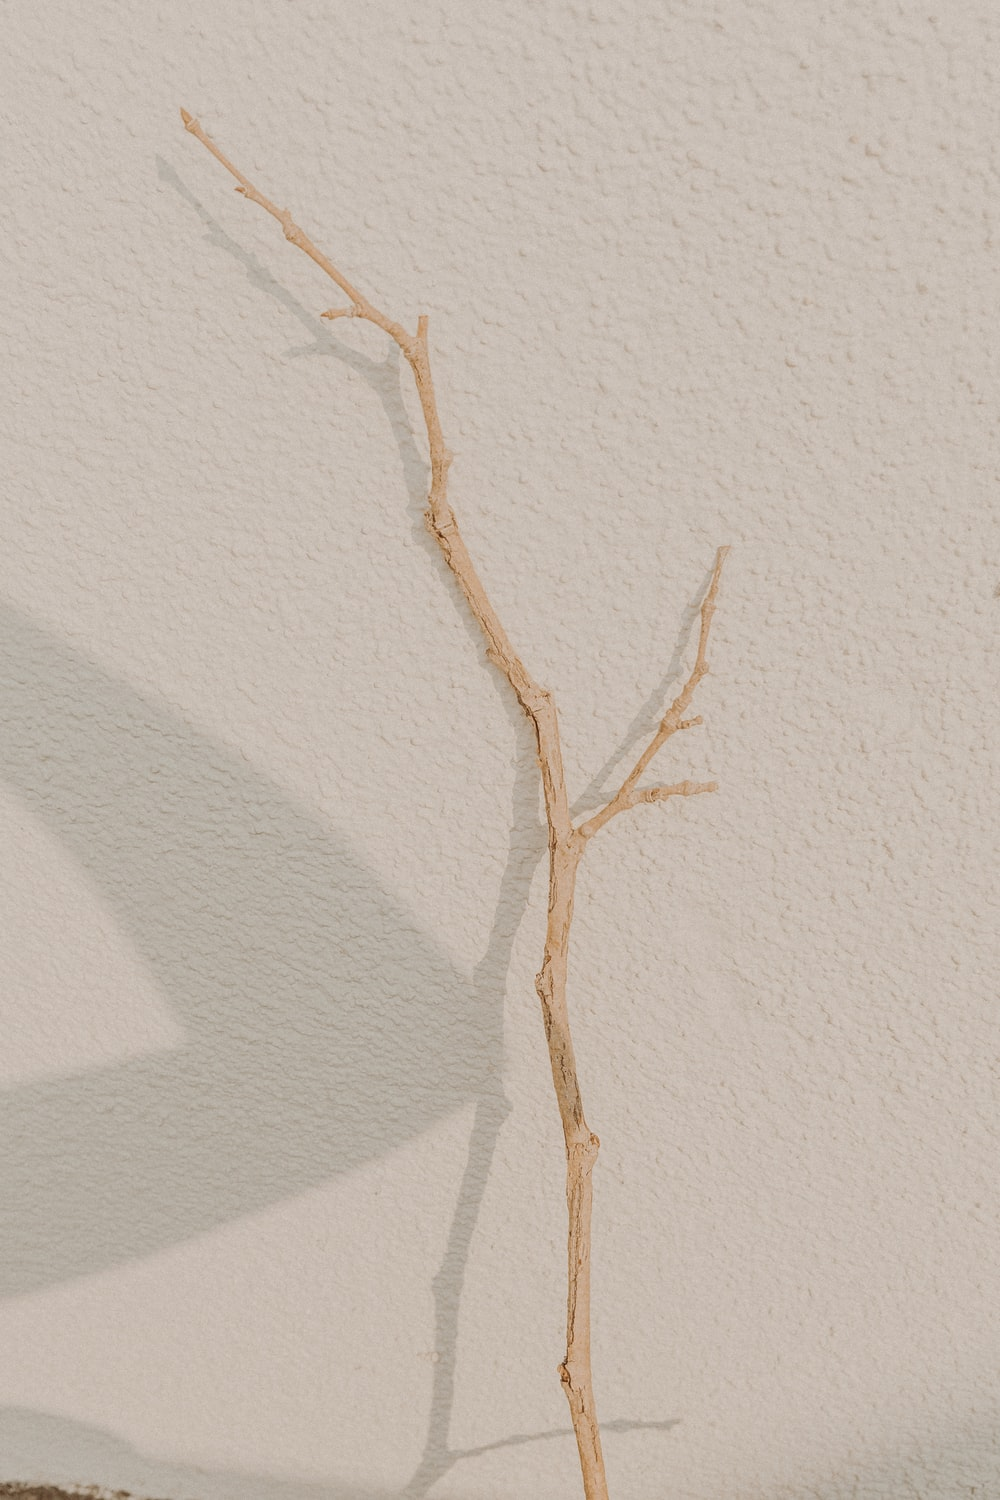 brown tree branch on white painted wall